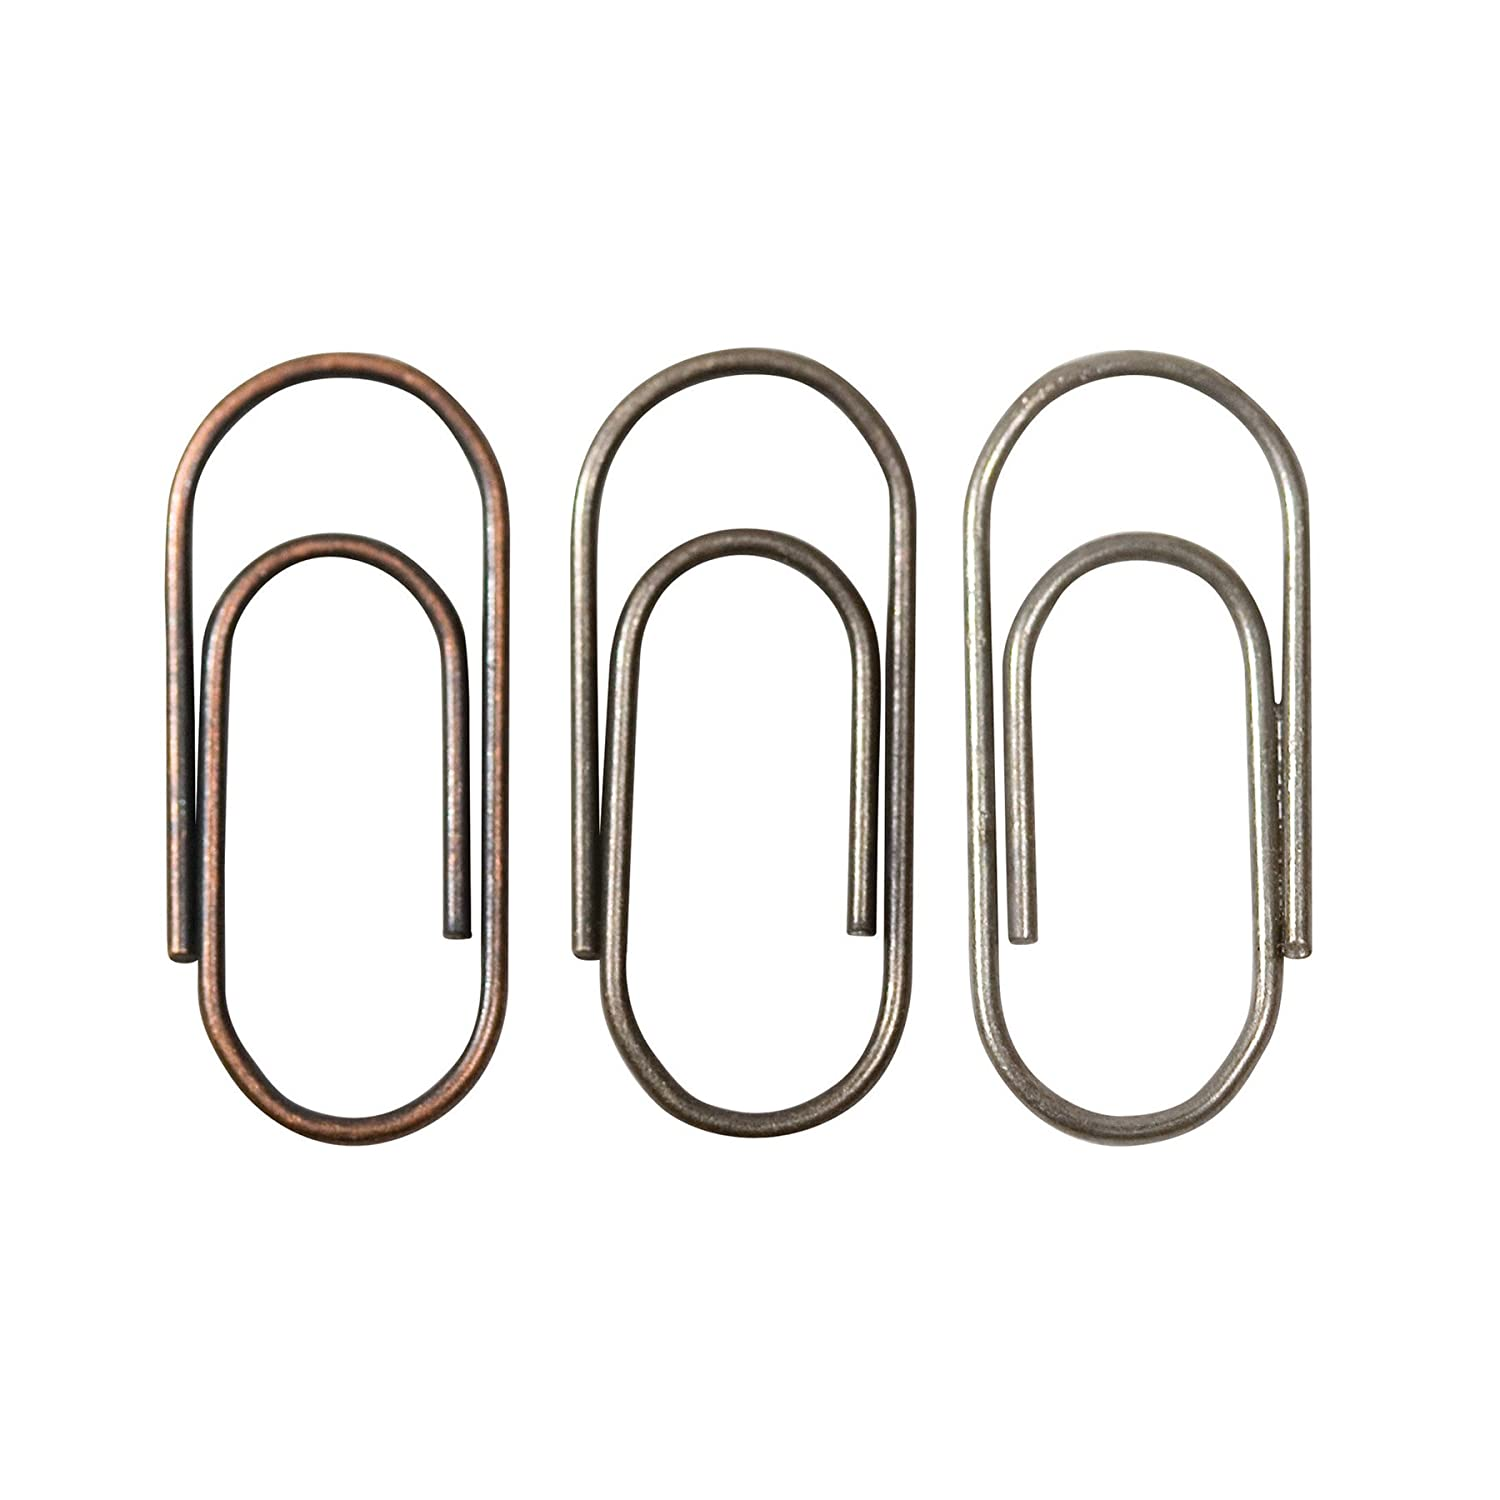 Advantus Metal Mini Paper Clips by Tim Holtz Idea-ology, 48 Per Pack, 5/8-Inch, Antique Finishes, TH92791 Notions - In Network